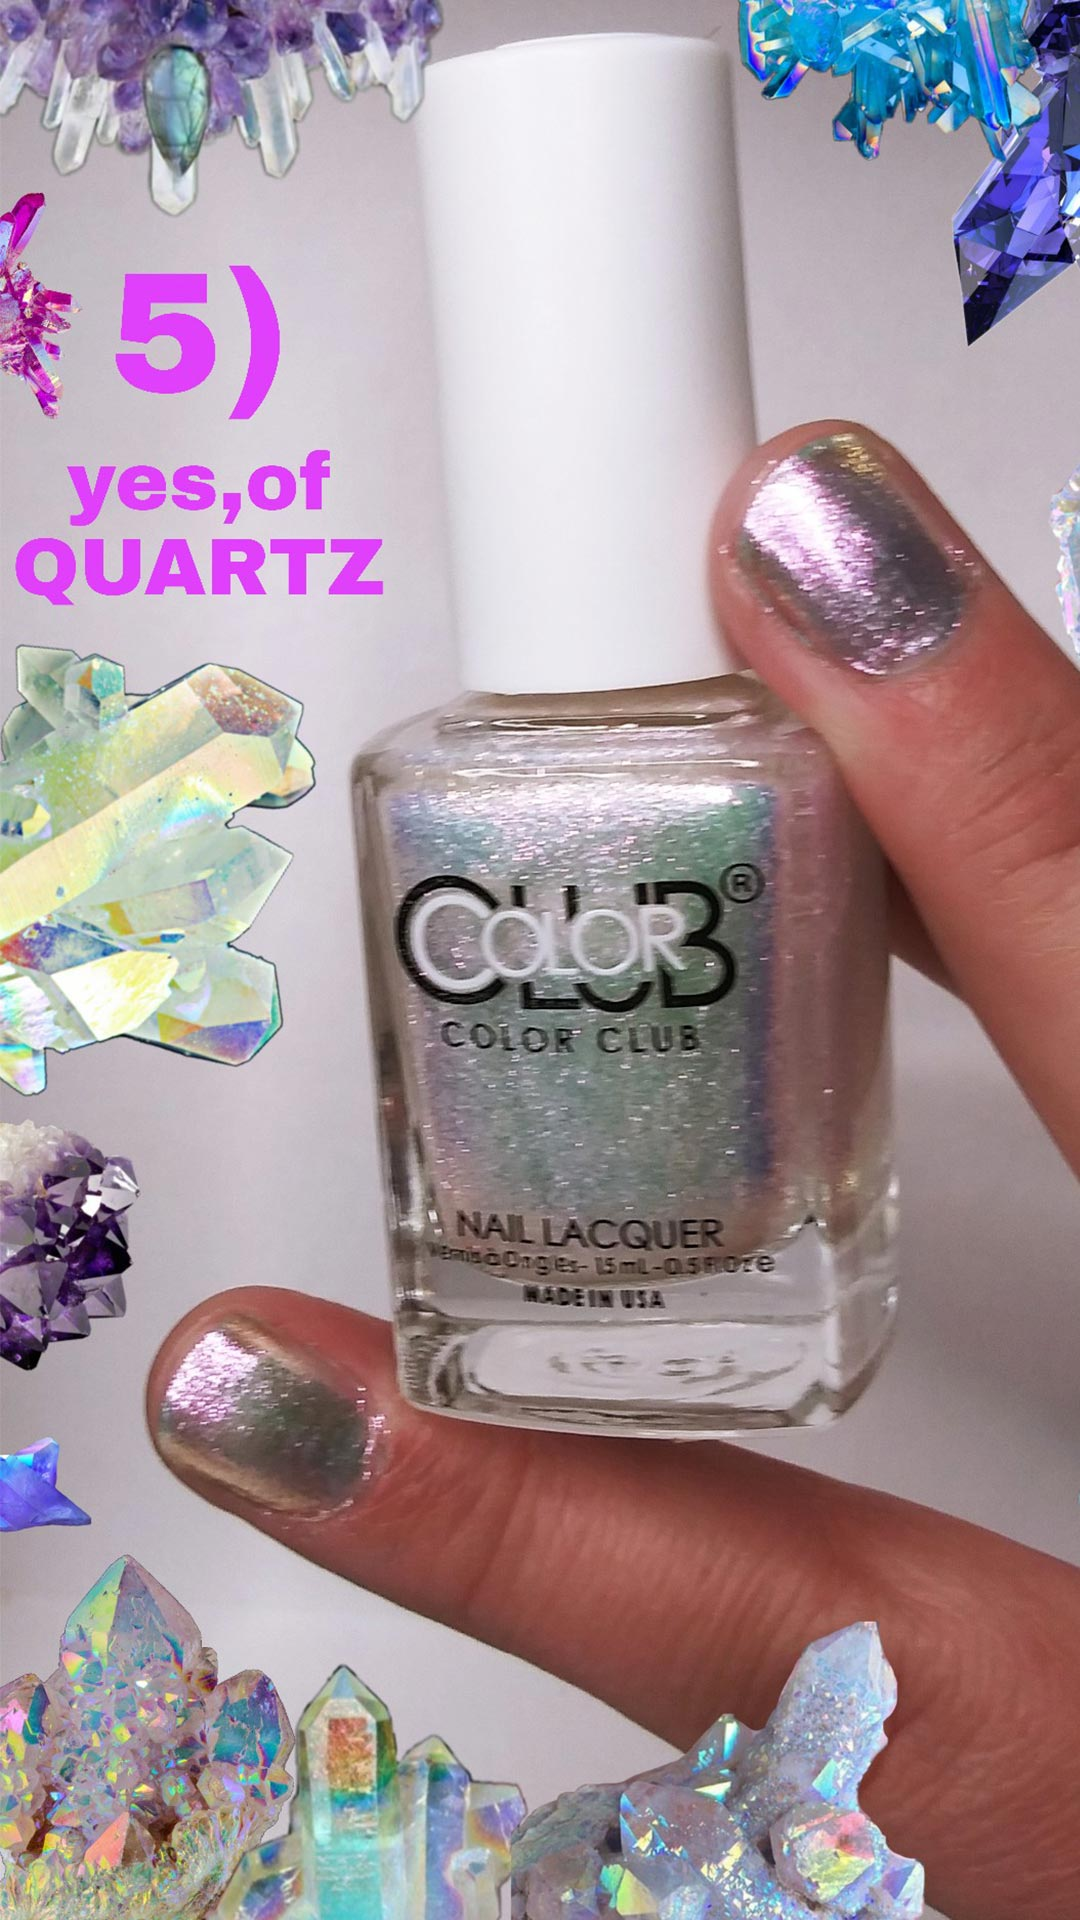 05_Color_Club_Nail_Polish_Collection.jpg.jpg